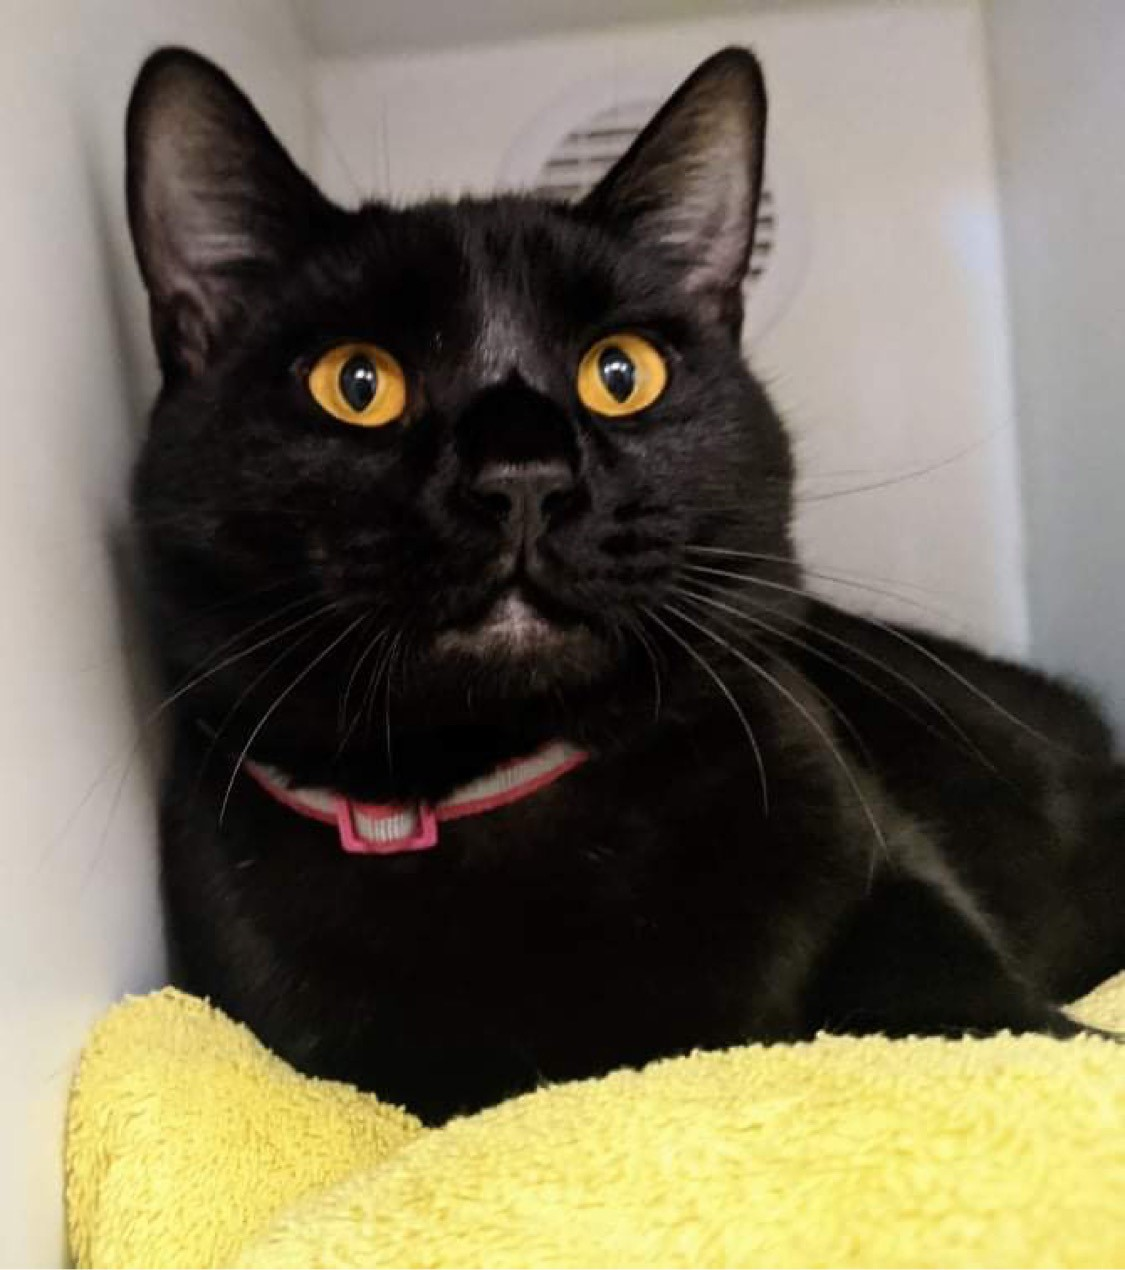 Pet of the Week provided by Ventura County Animal Services